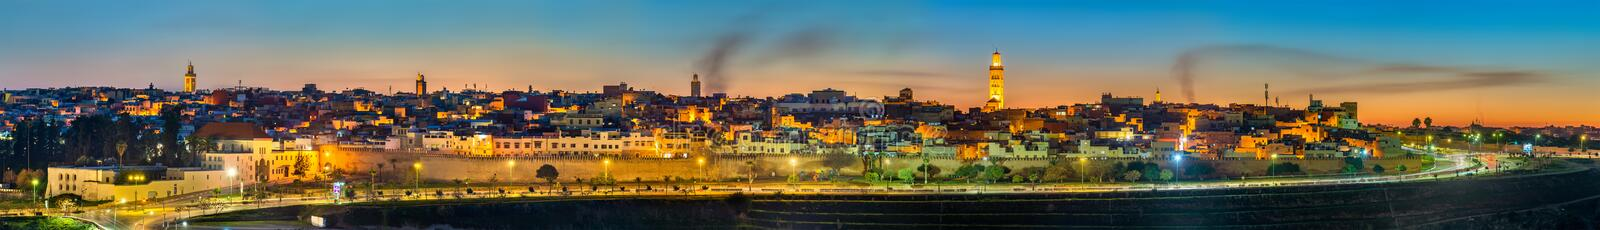 Panorama of Meknes in the evening - Morocco royalty free stock photo